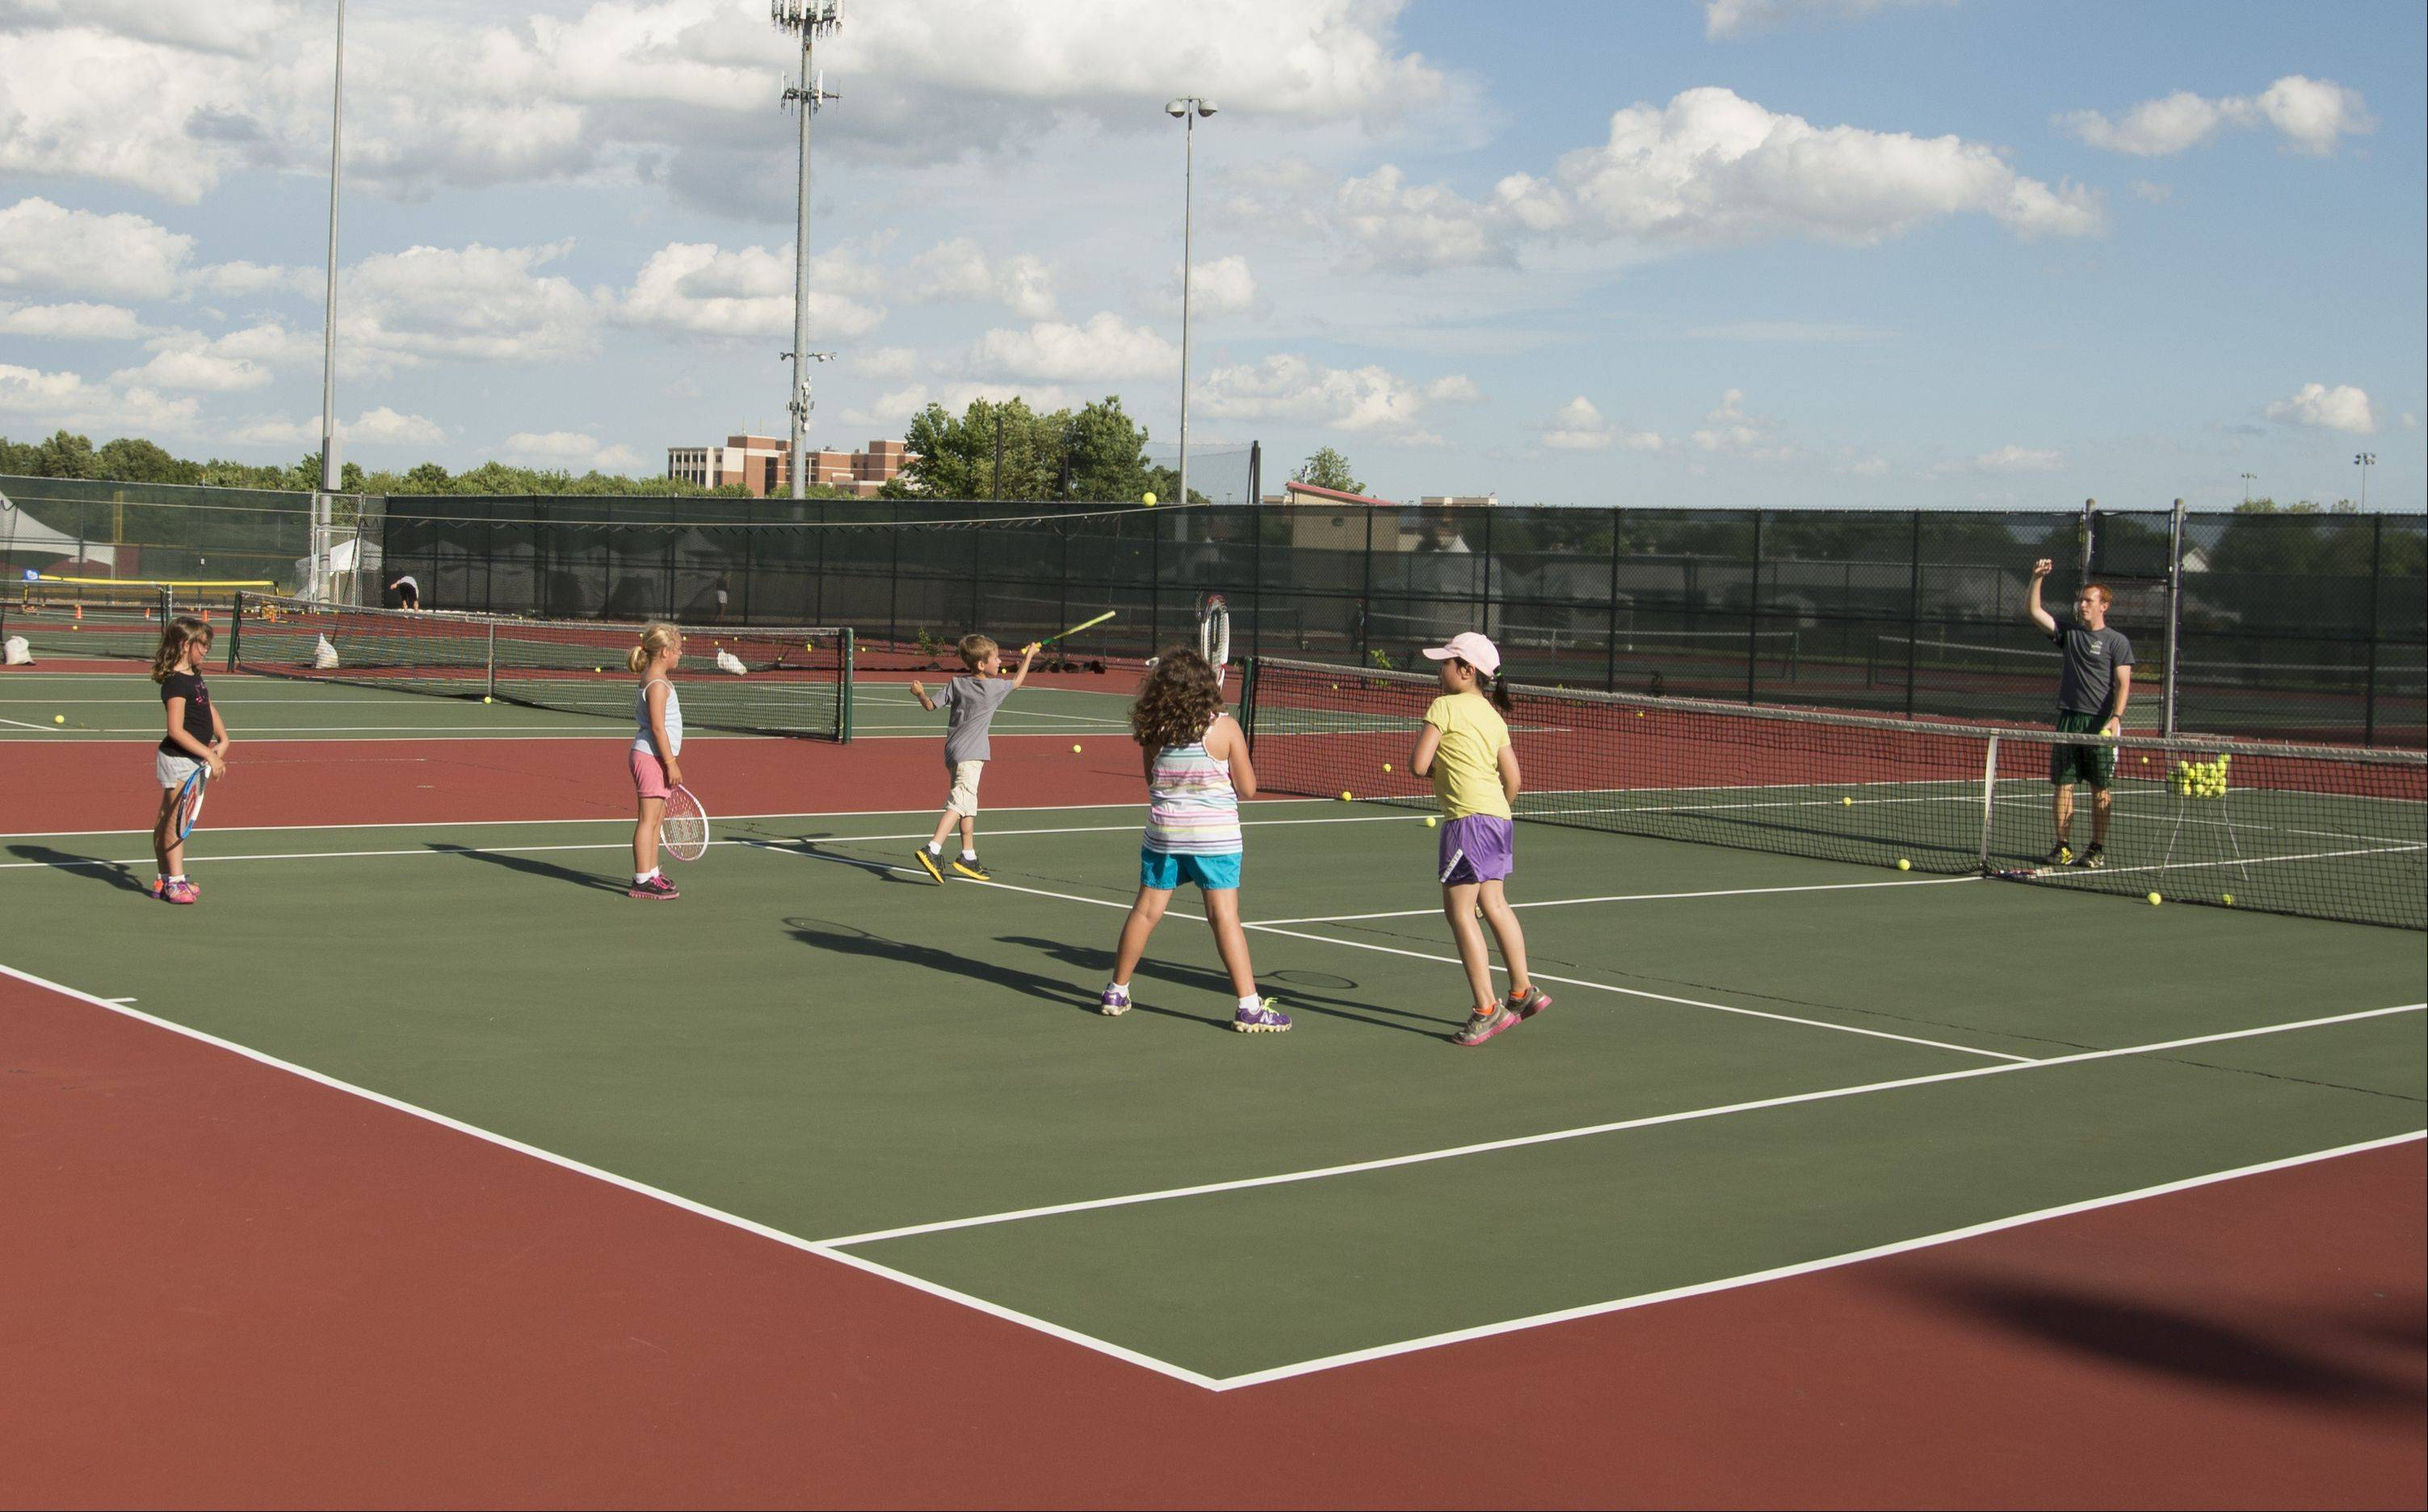 Improvements to 12 tennis courts will be part of the renovations at Knoch Park North.